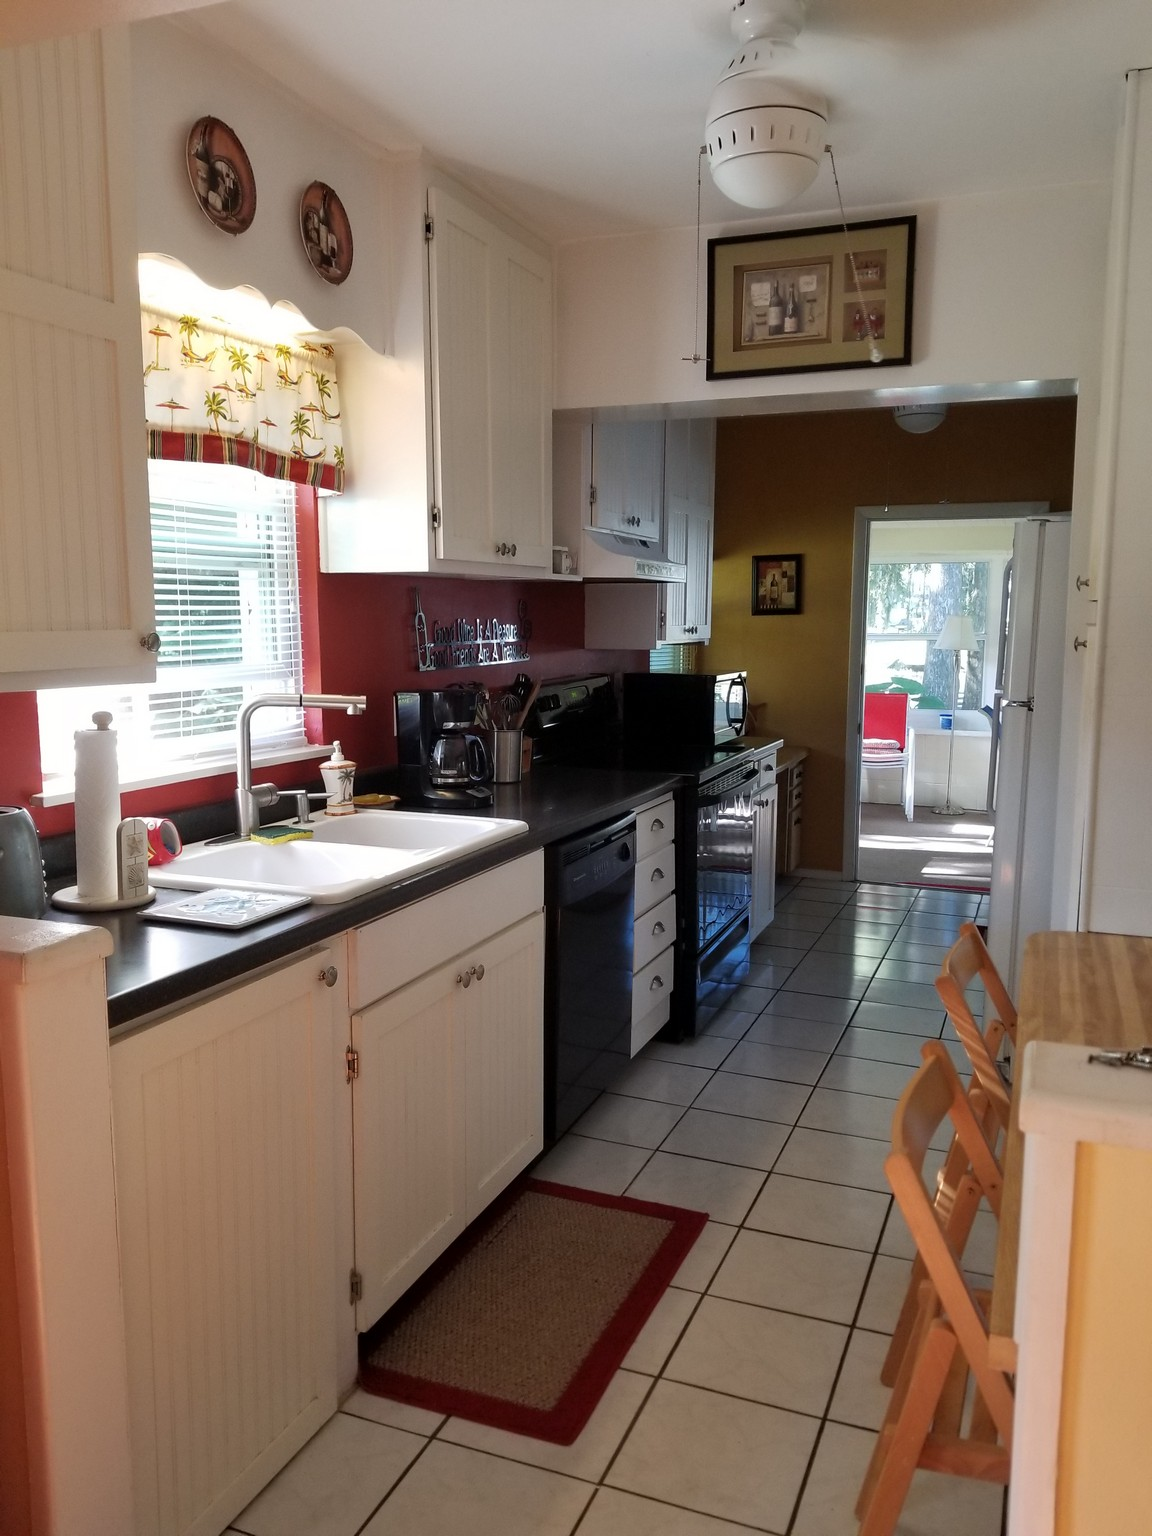 photo of kitchen with dishwasher, stove, and microwave